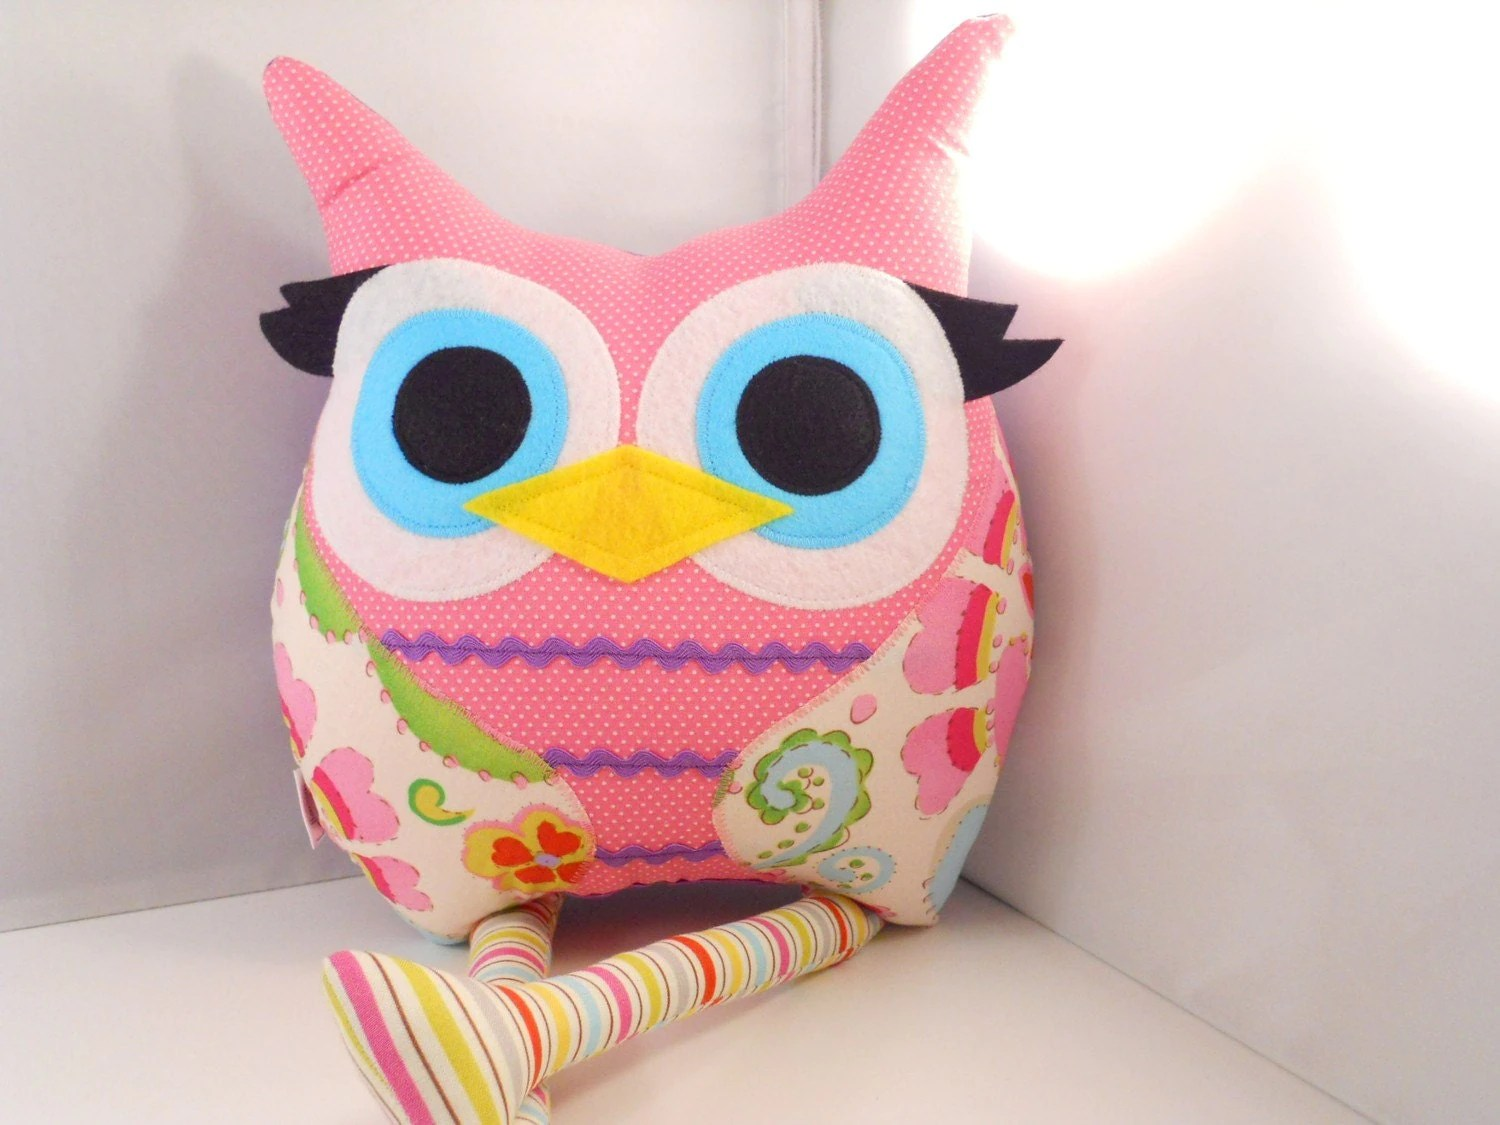 Stuff Owl Owl Pillow Plush Stuffed Toy Christmas Toy Gift By Karensagez